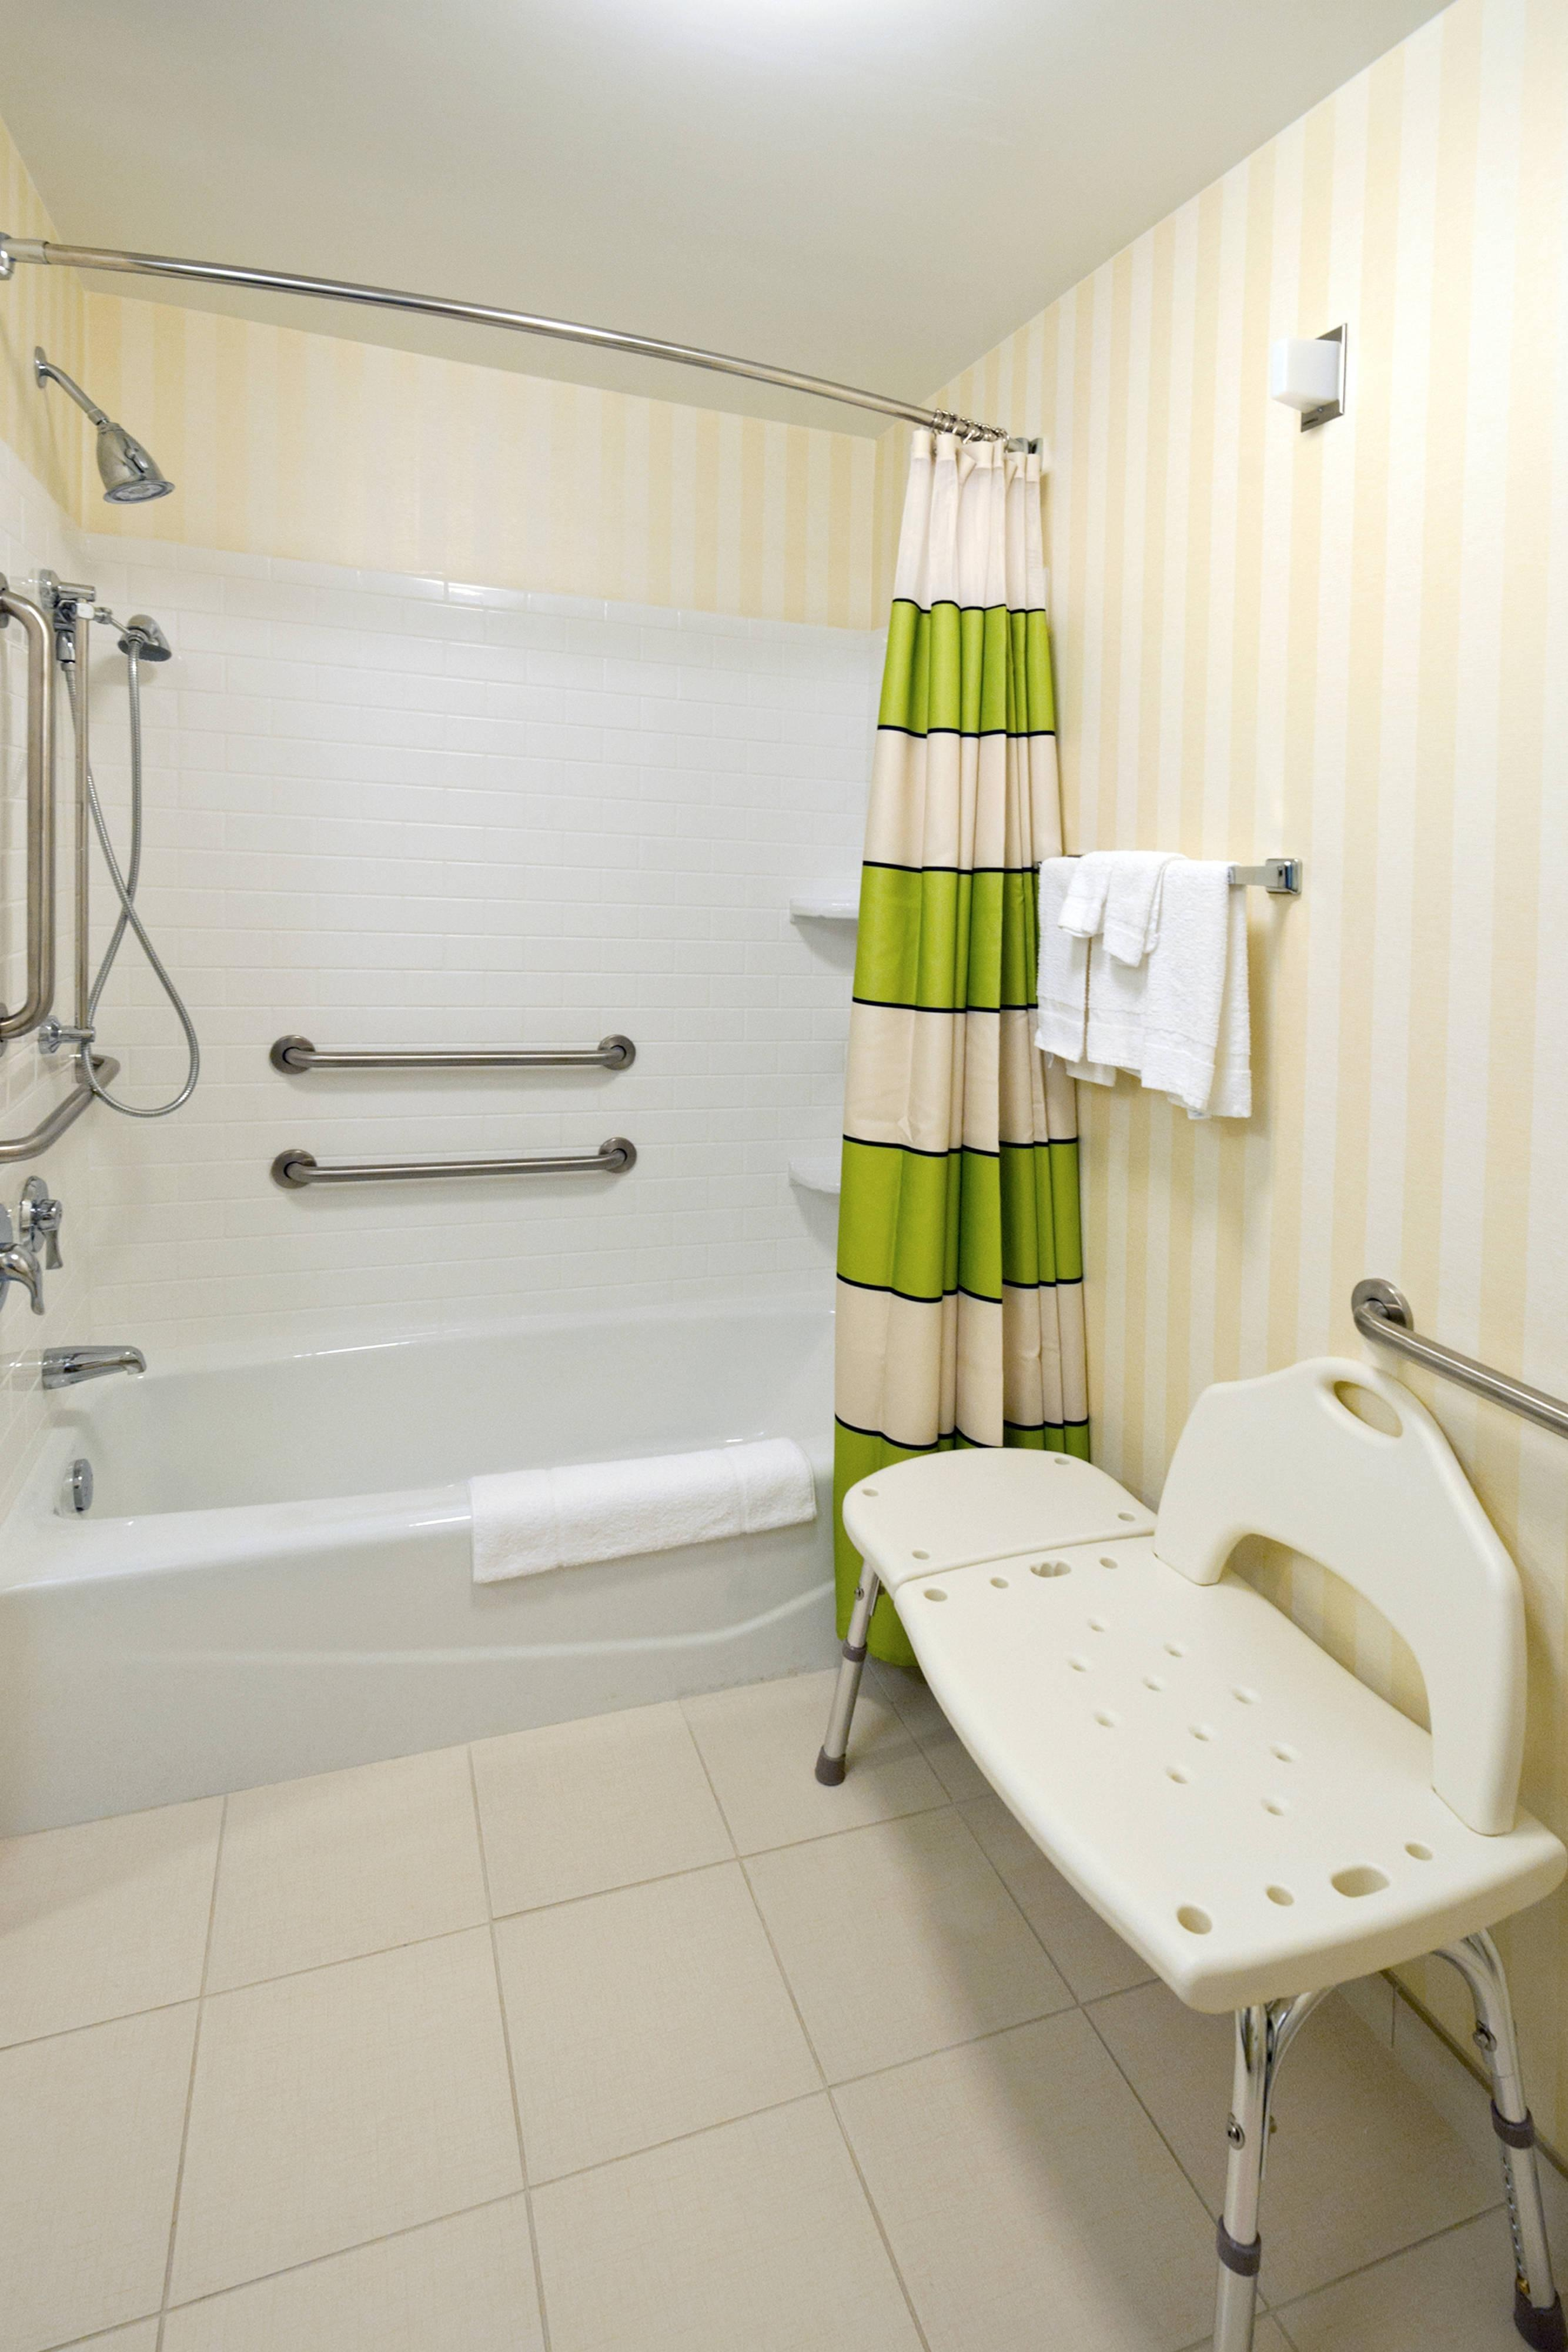 Accessible Guest Bathroom - Tallahassee hotel